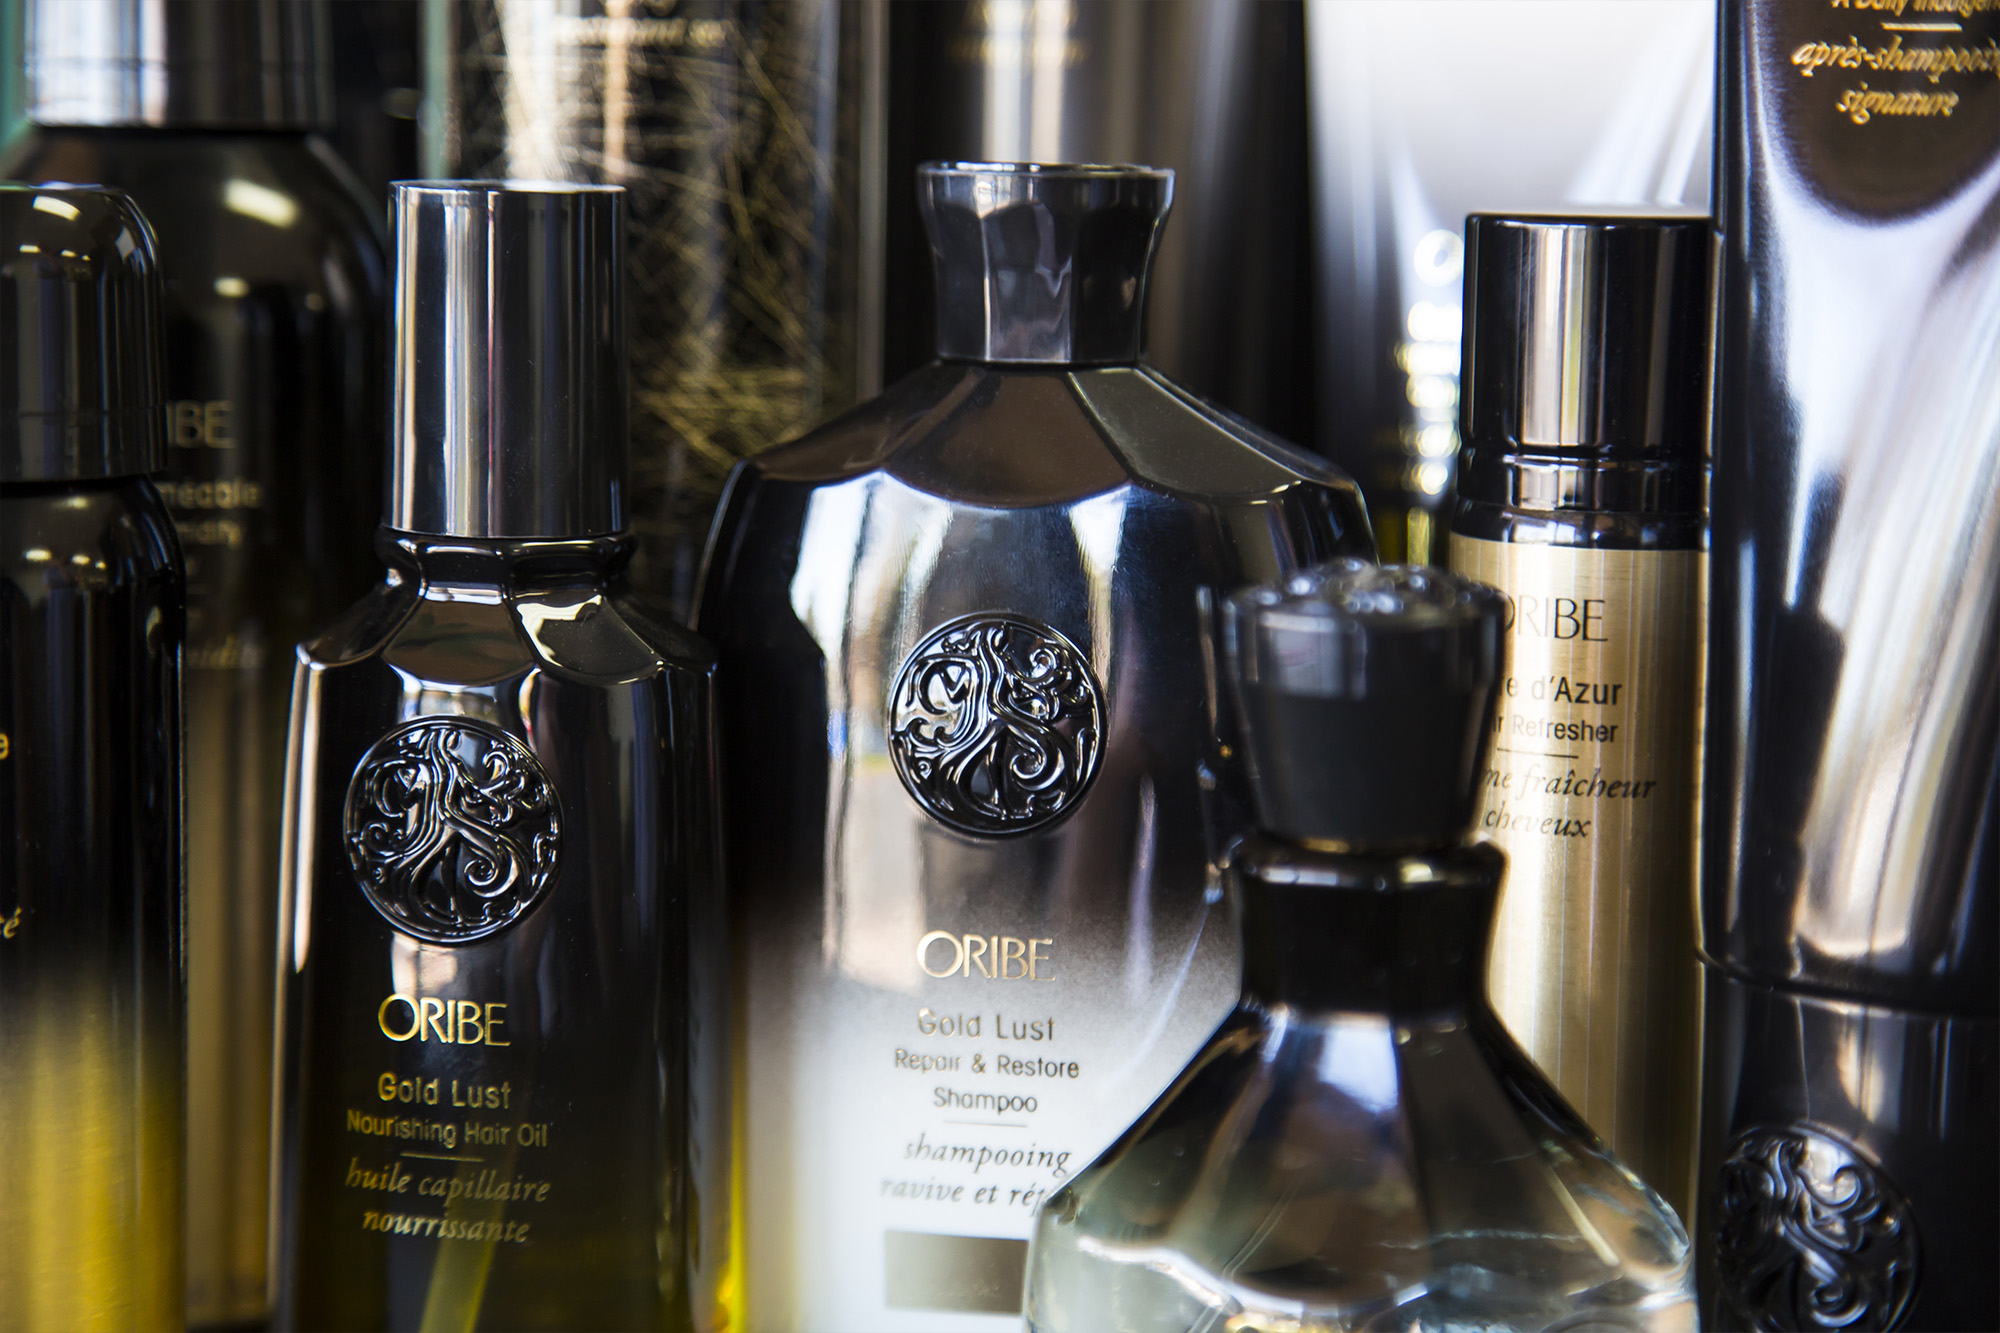 oribe_dark_close-2-cropped.jpg